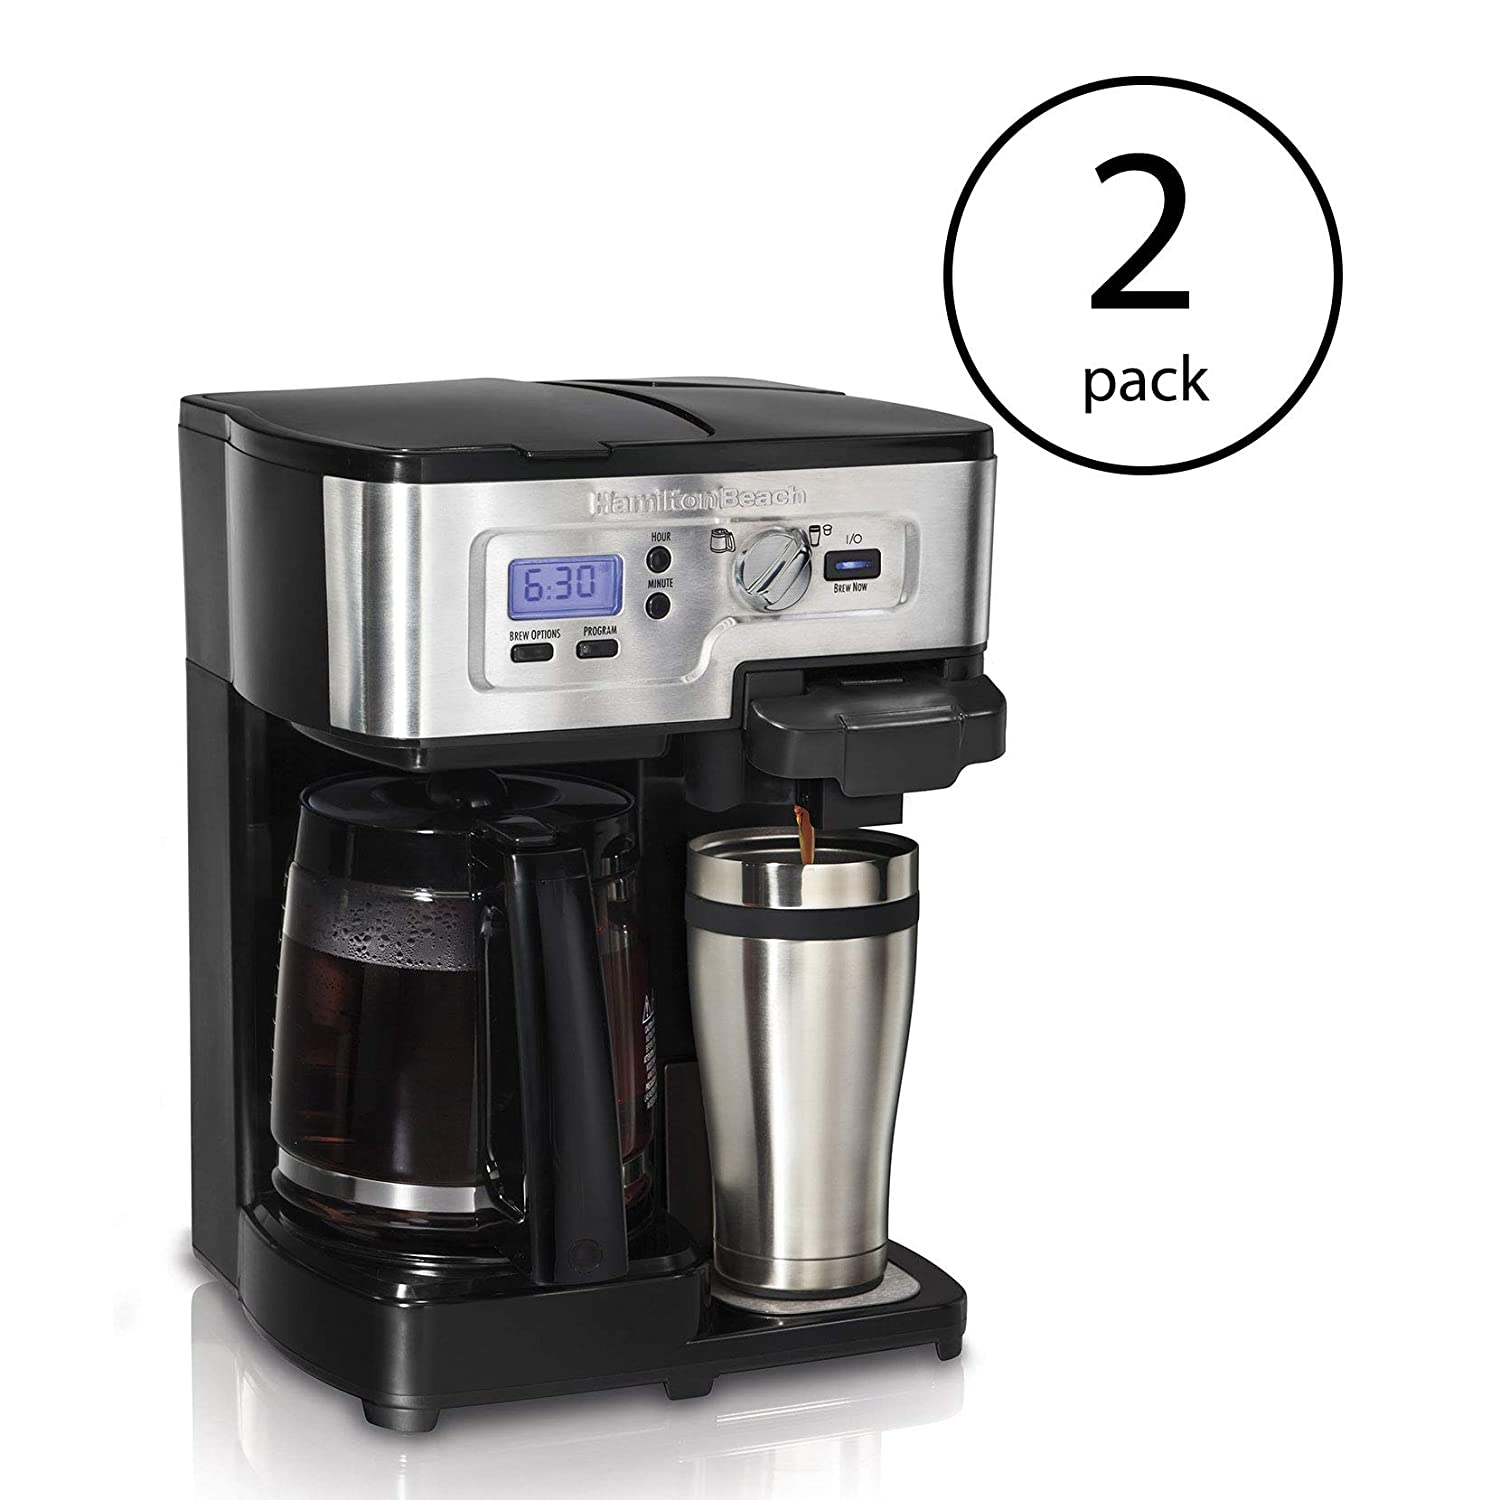 Hamilton Beach 2 Way FlexBrew 1 to12 Cup KCup Ready Coffee Maker Brewer (2 Pack)